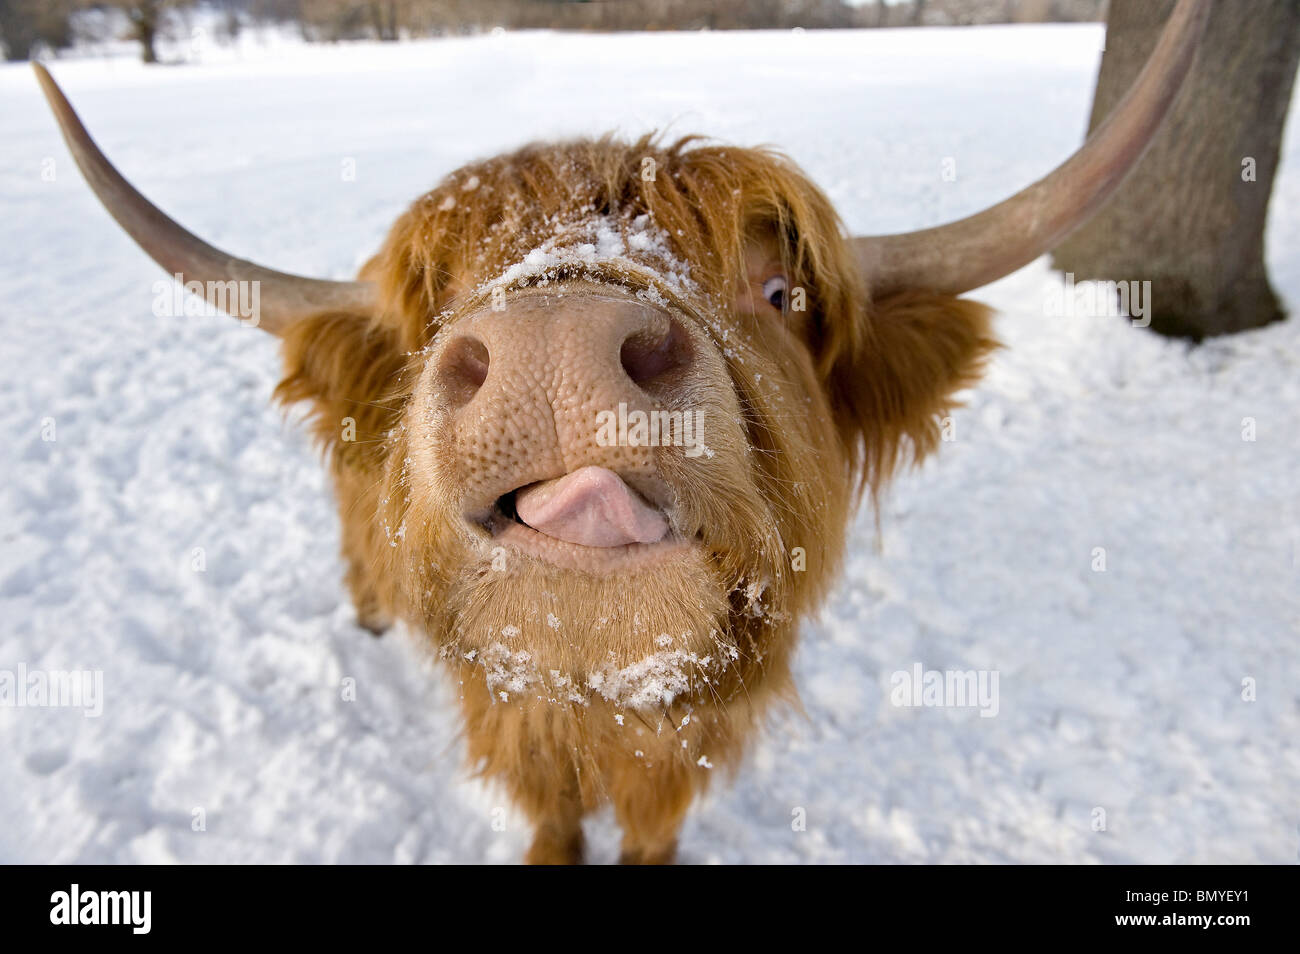 Highland cattle. Portrait en hiverBanque D'Images